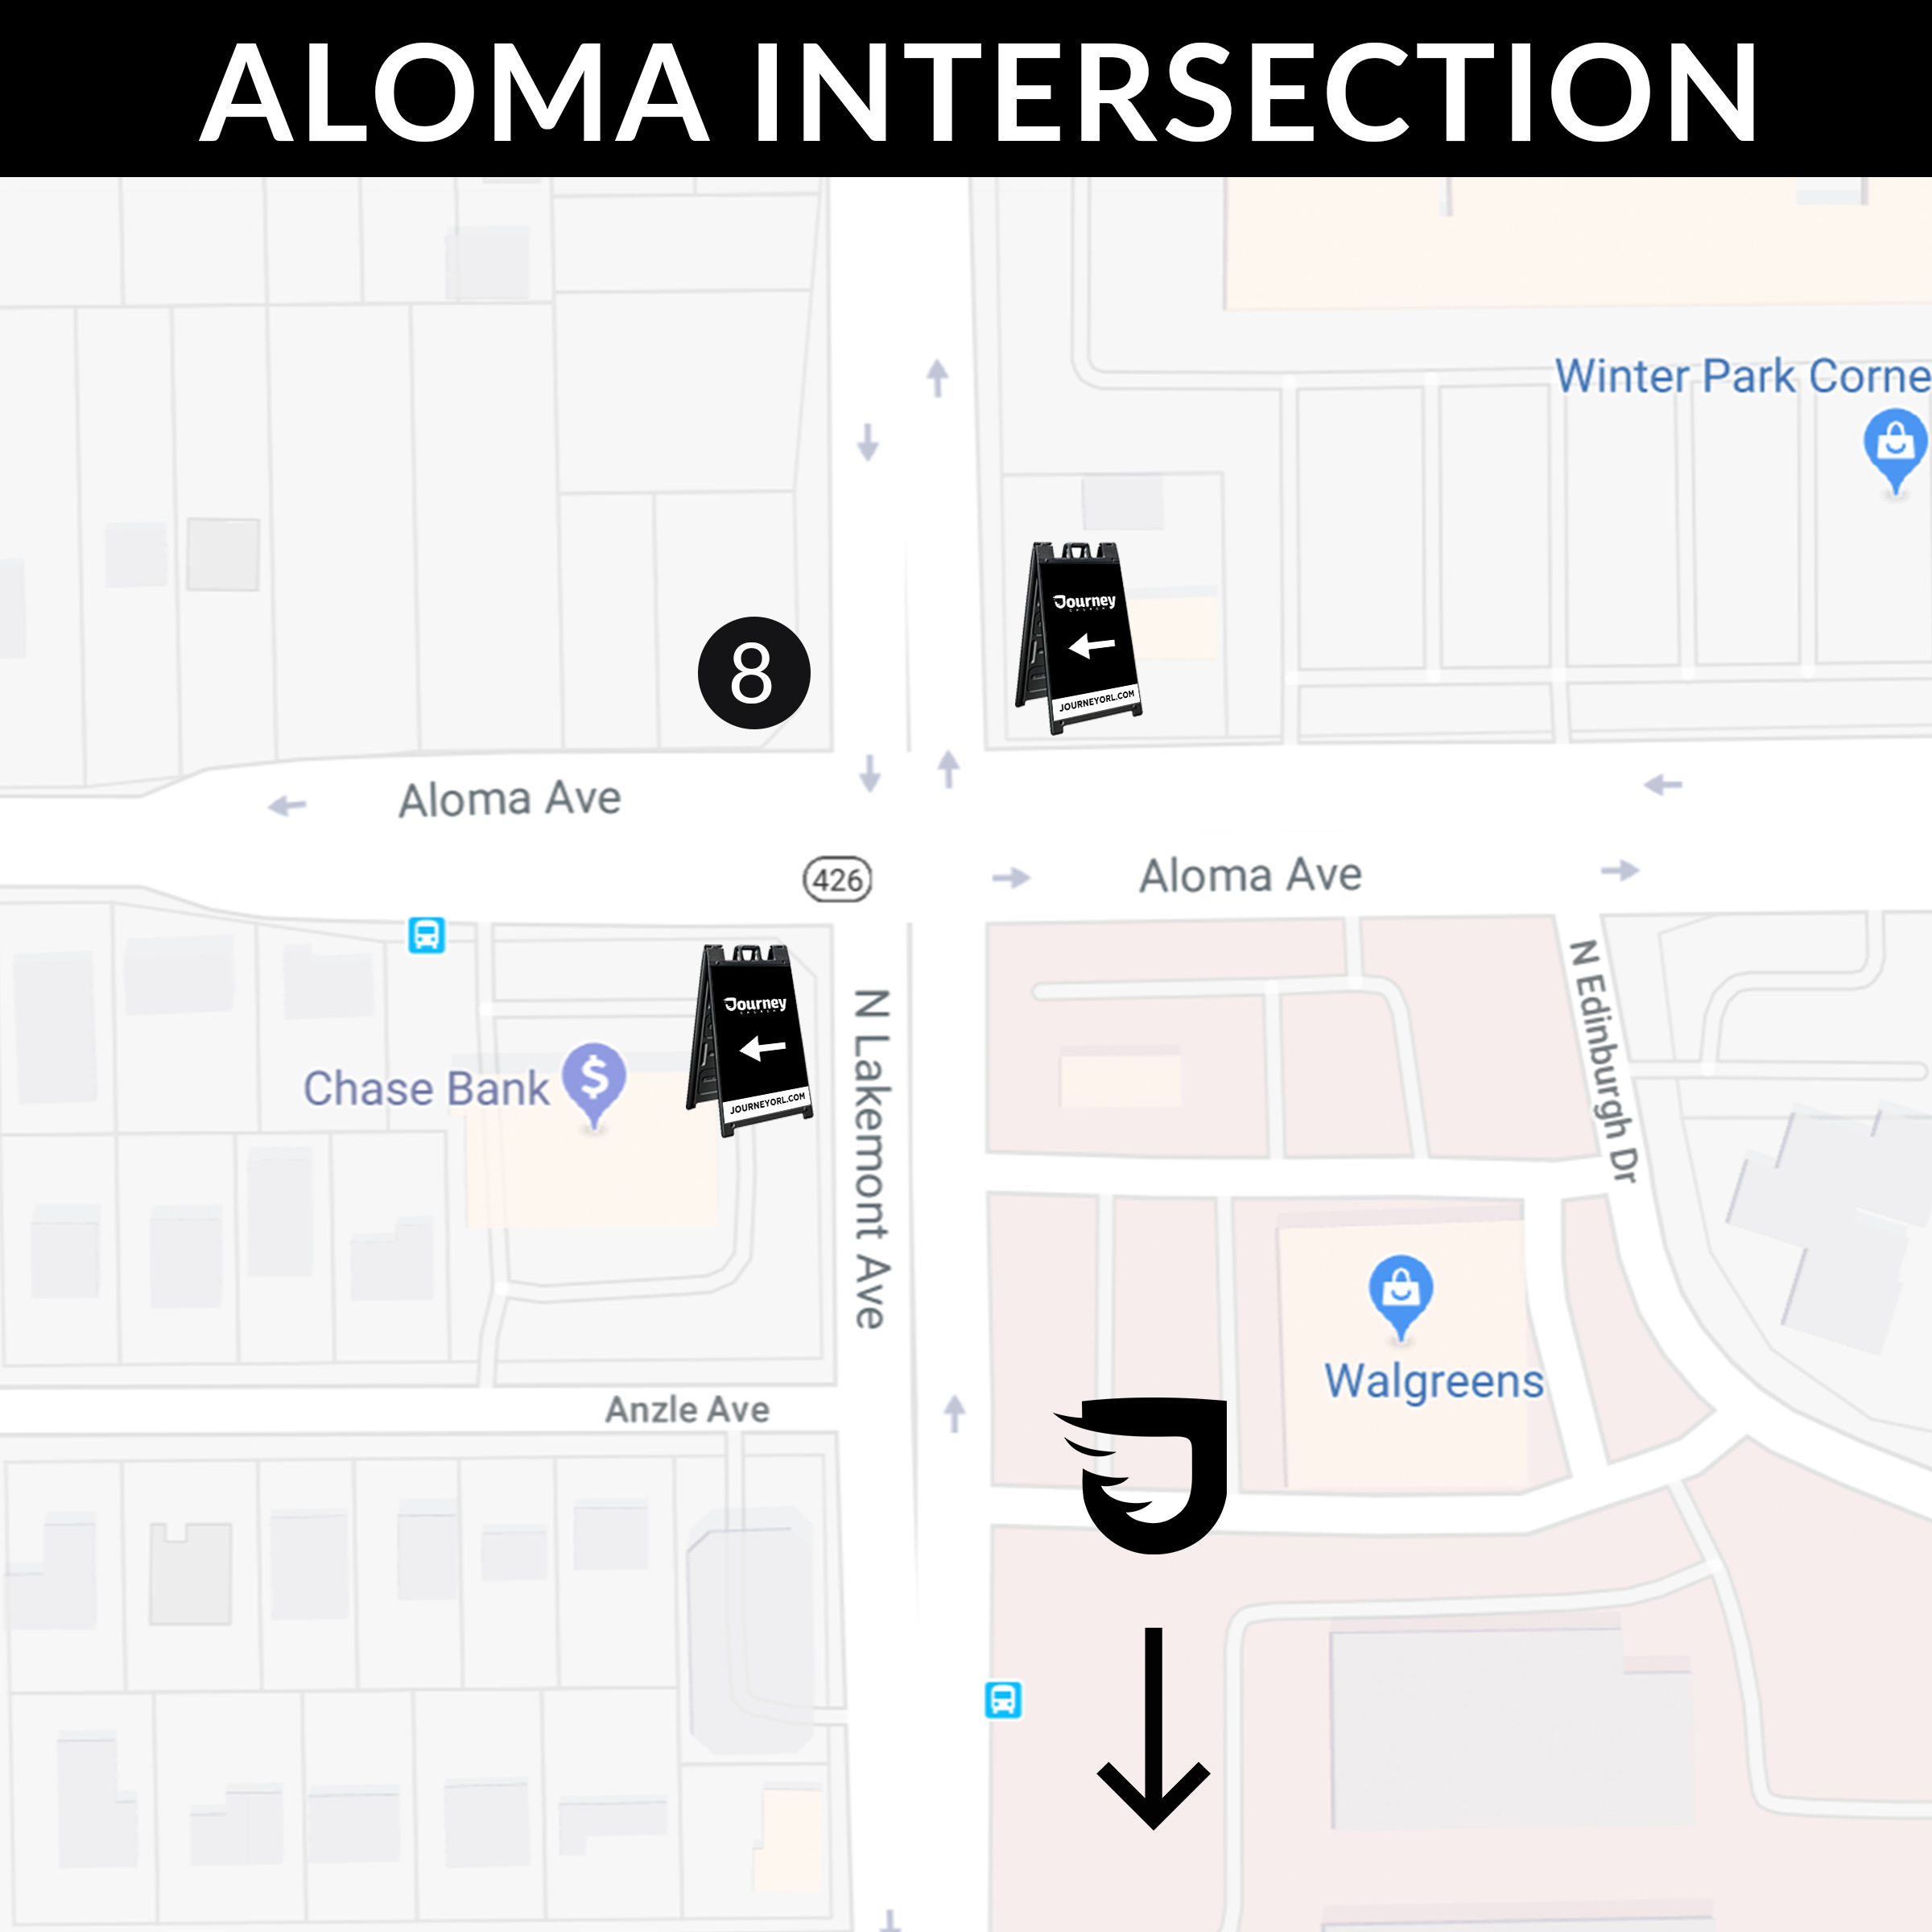 aloma intersection map.jpg